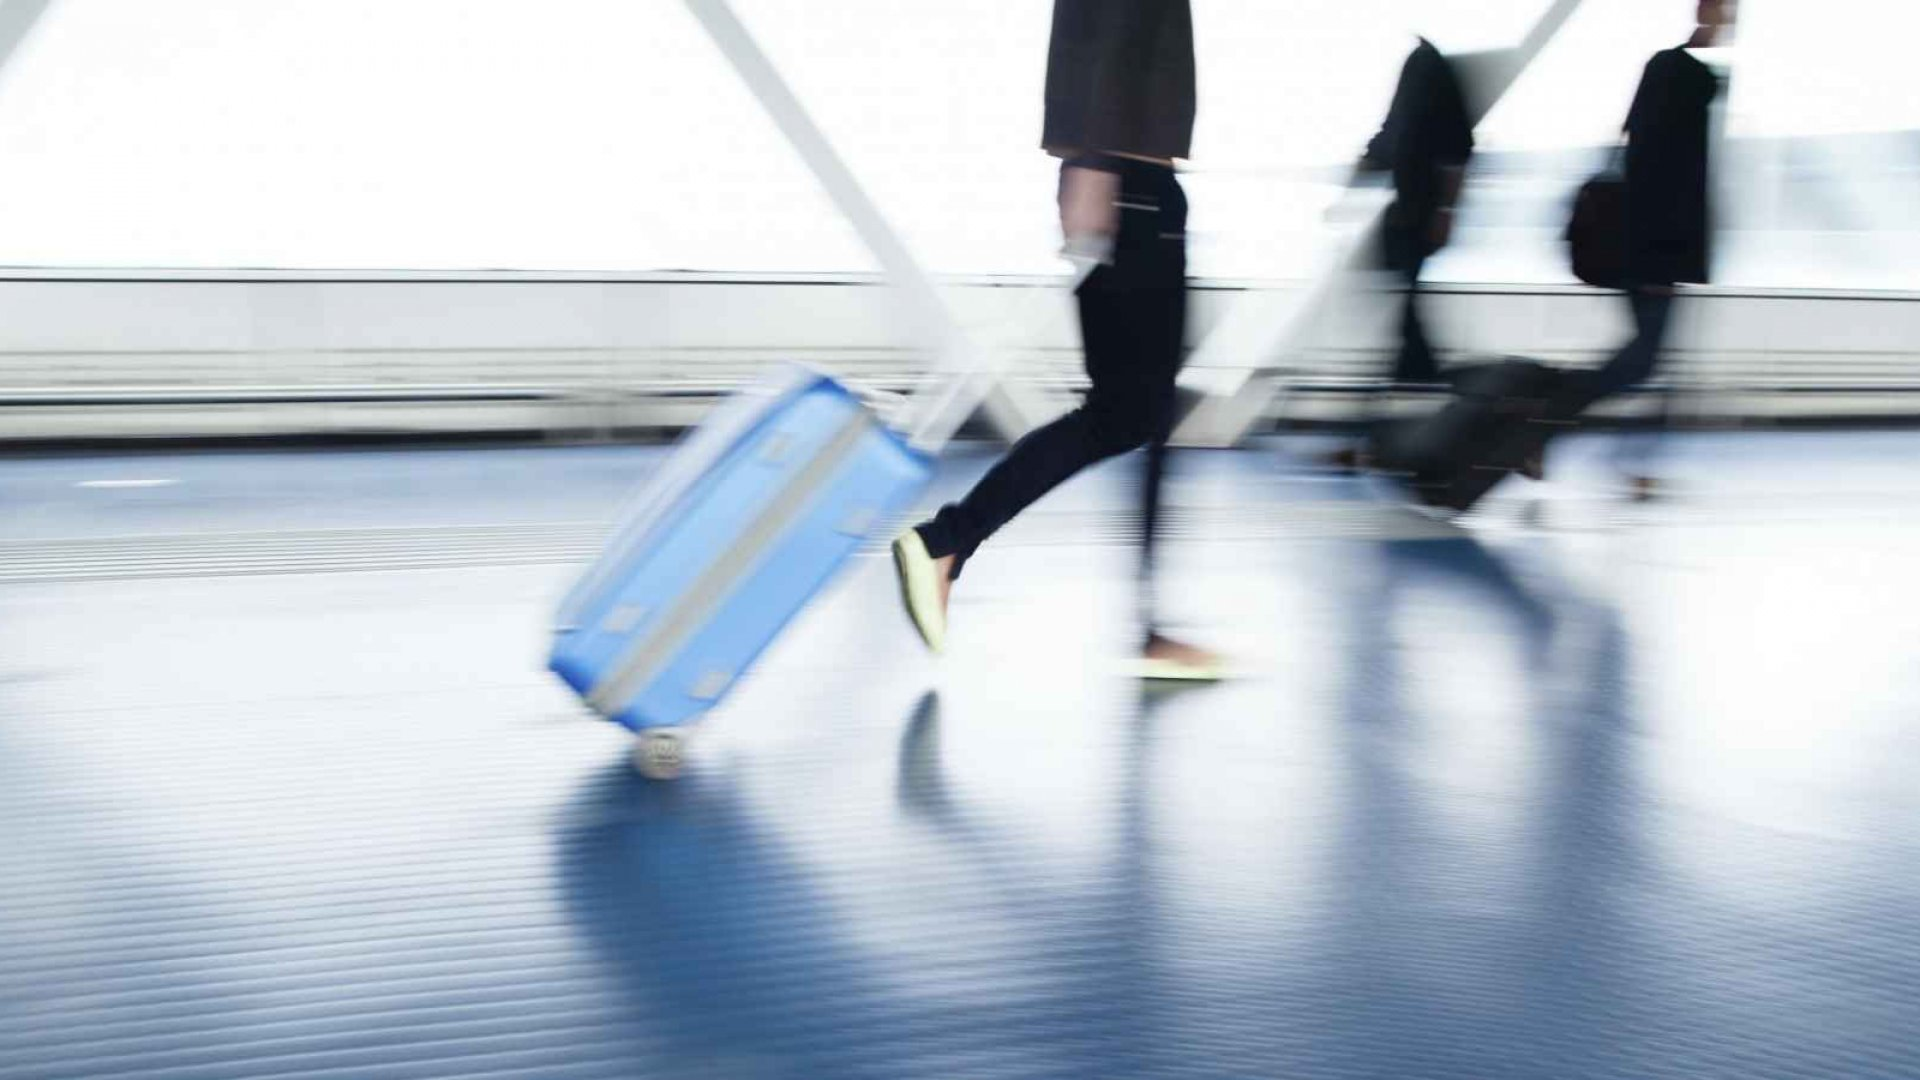 15 Tips on How to Get the Most Out of Your Next Business Trip